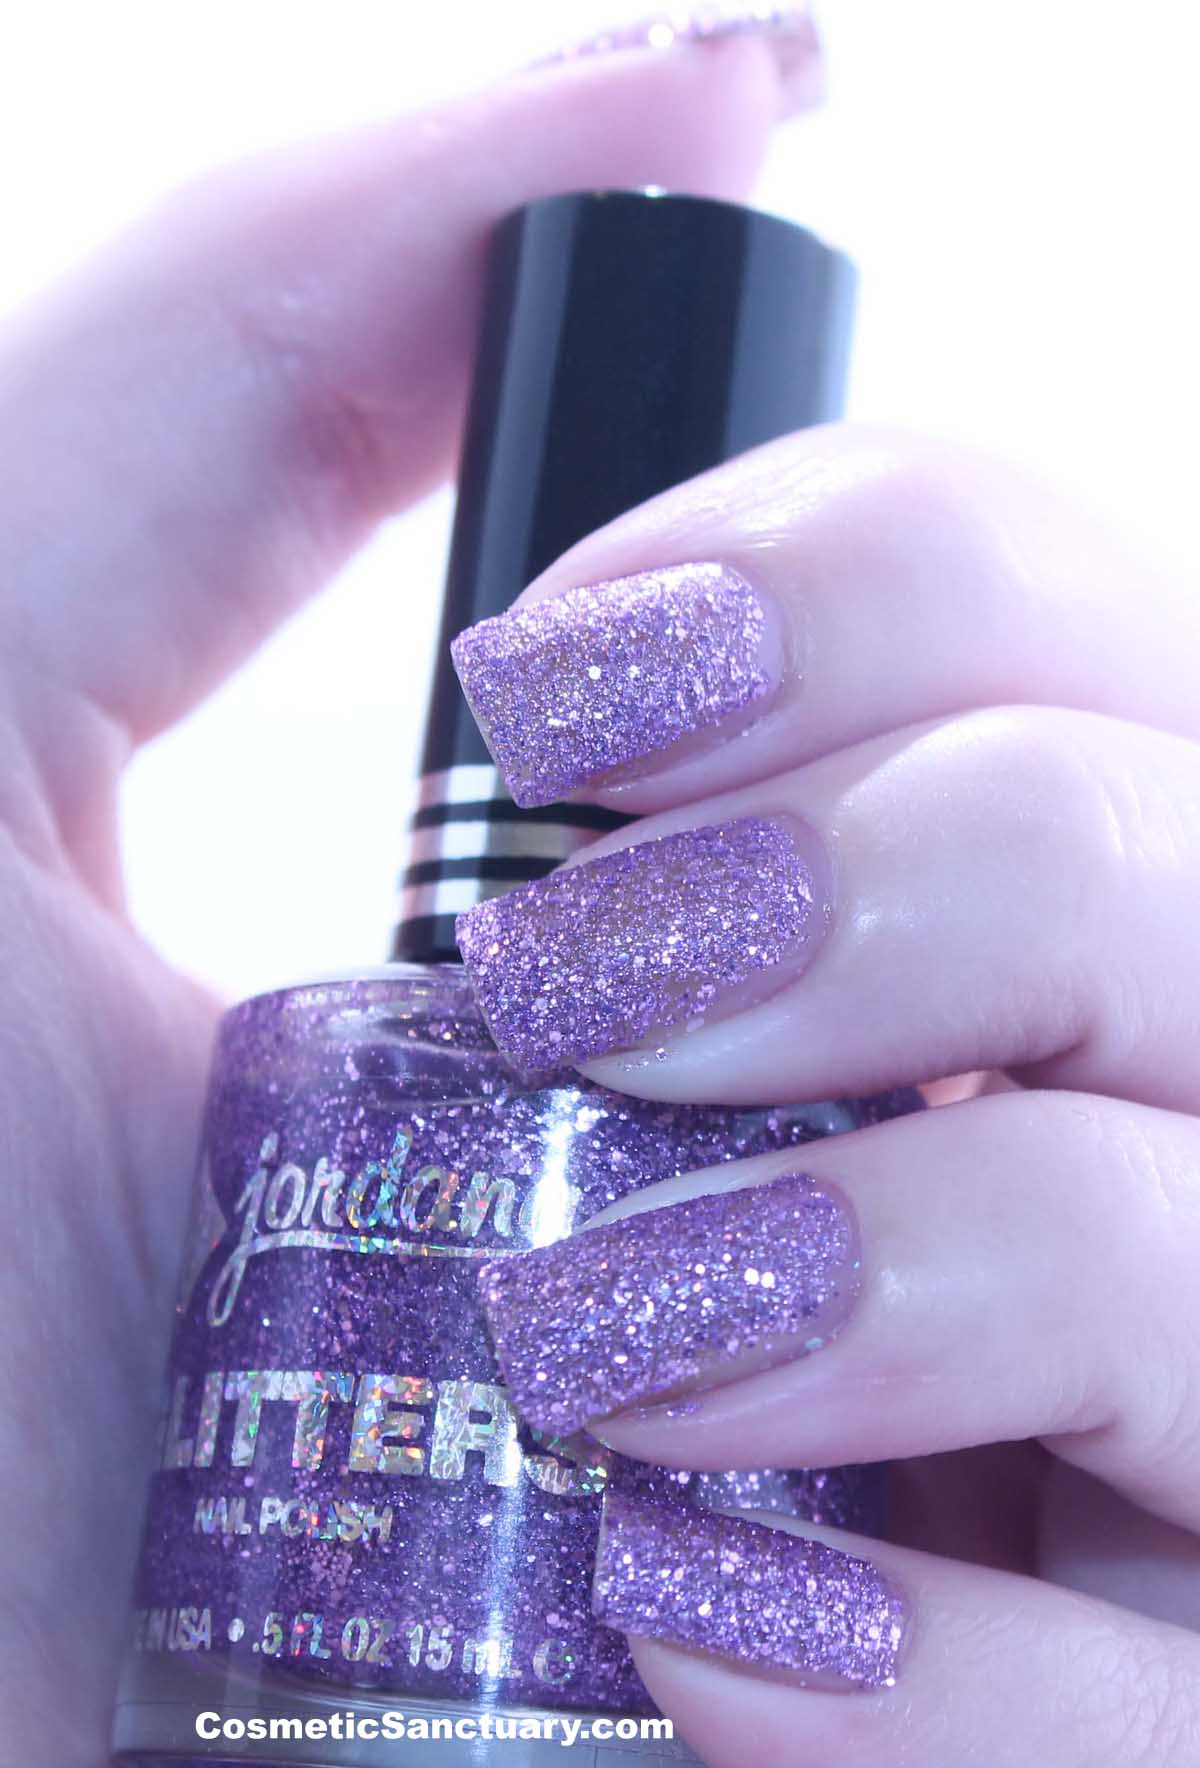 Jordana Glitters Specialty Nail Polish Reviews and Swatches